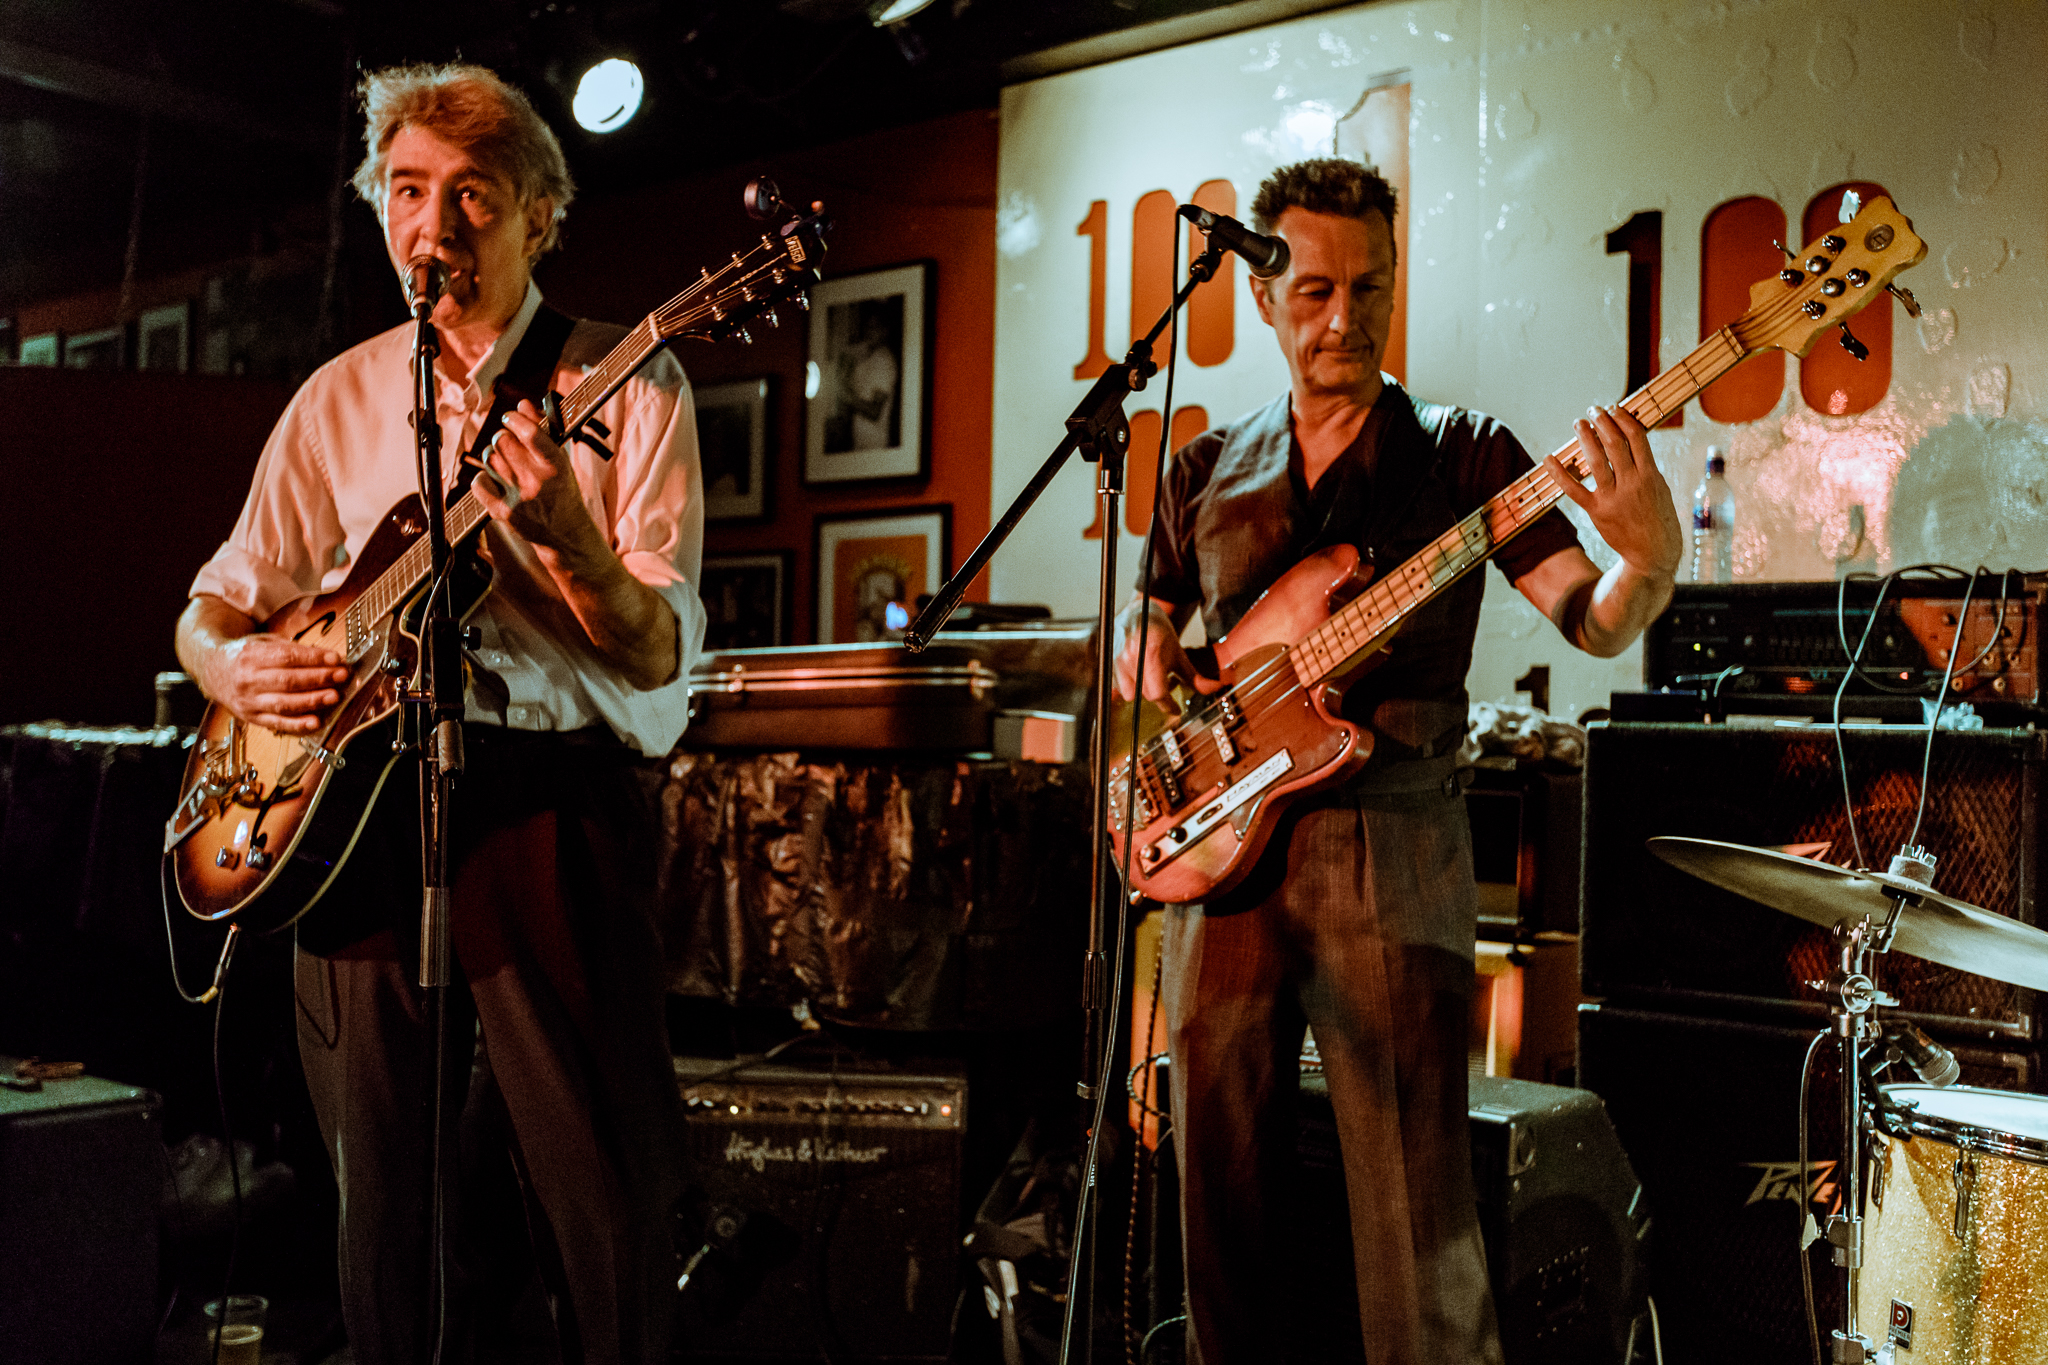 The Jazz Butcher performing at the 100 Club in London, England - 5/27/2018 (photo by Matt Condon / @arcane93)